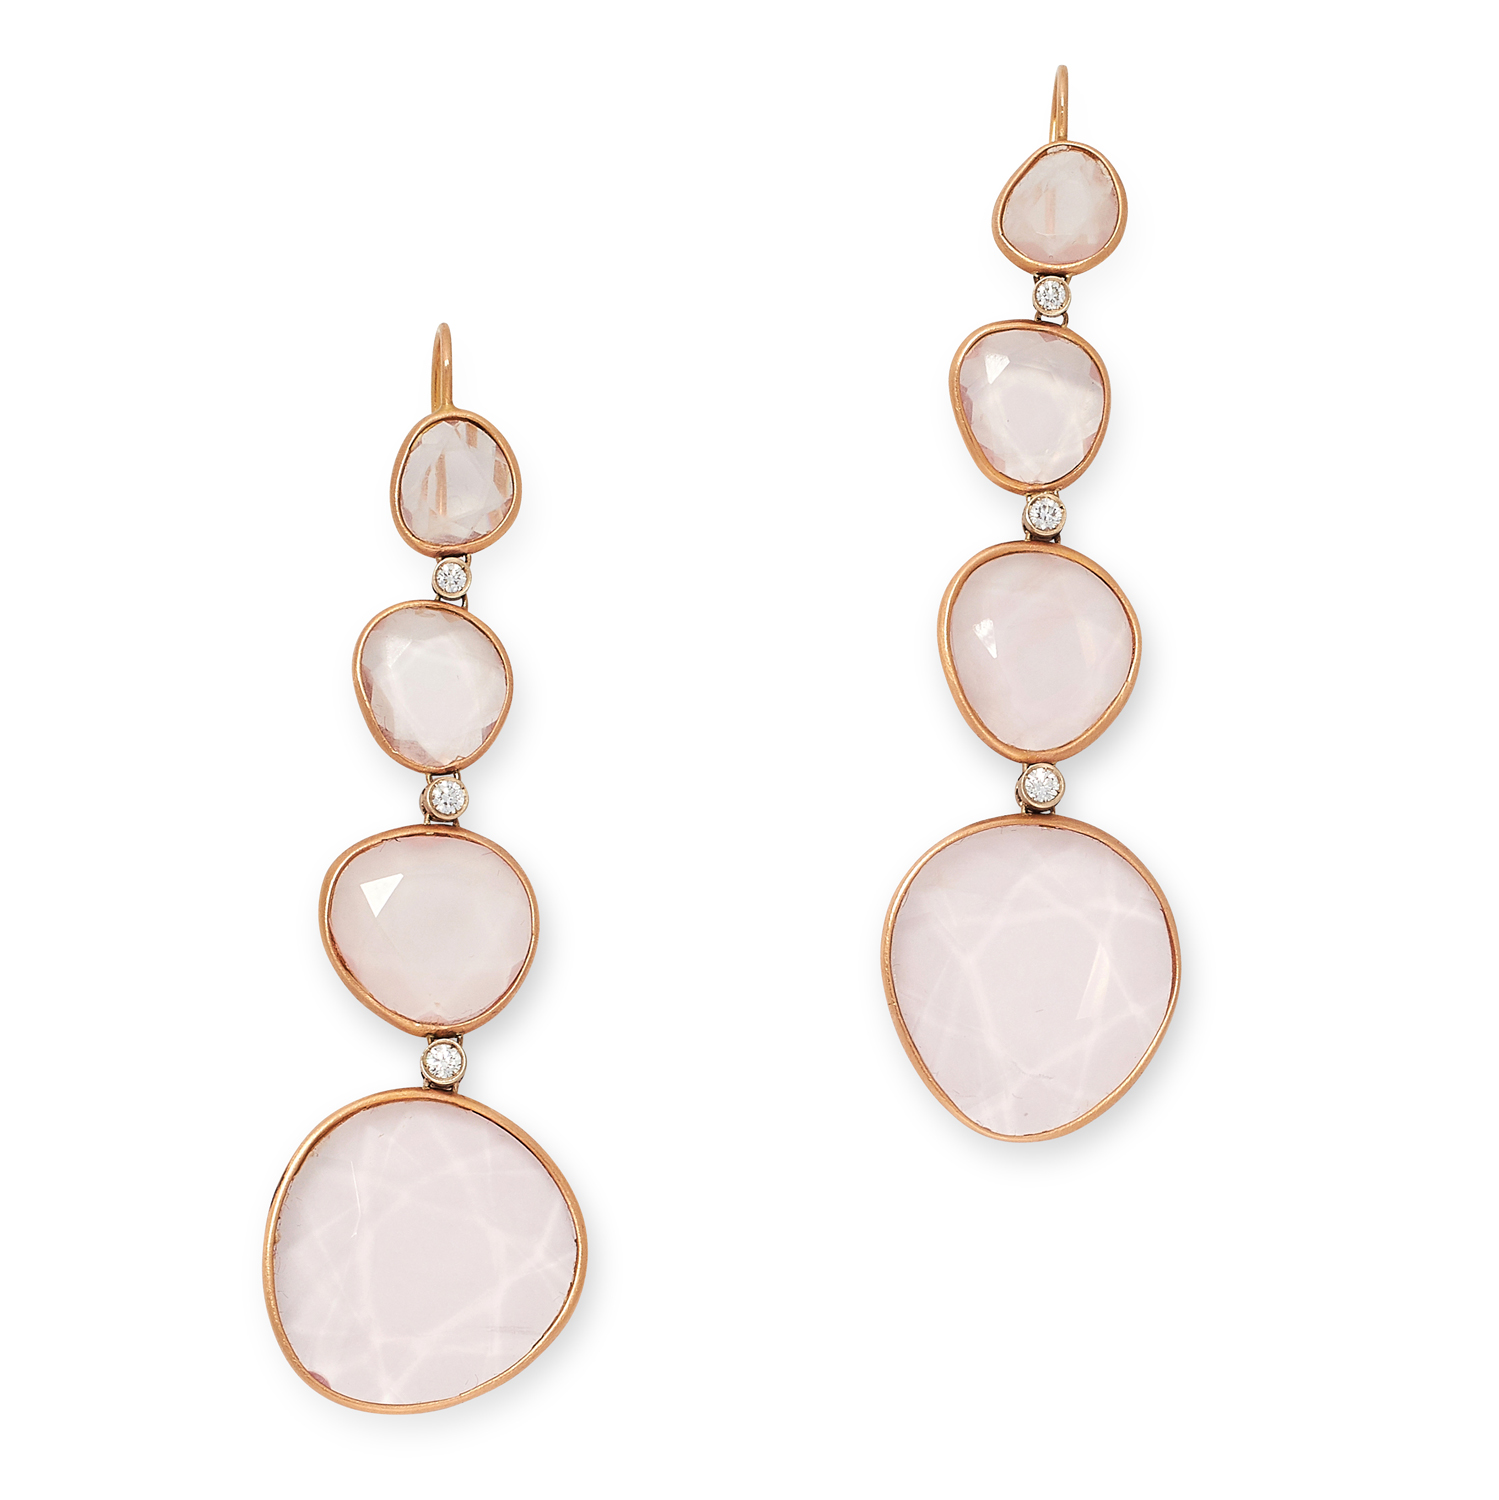 A PAIR OF ROSE QUARTZ AND DIAMOND EARRINGS each set with four graduated faceted rose quarts